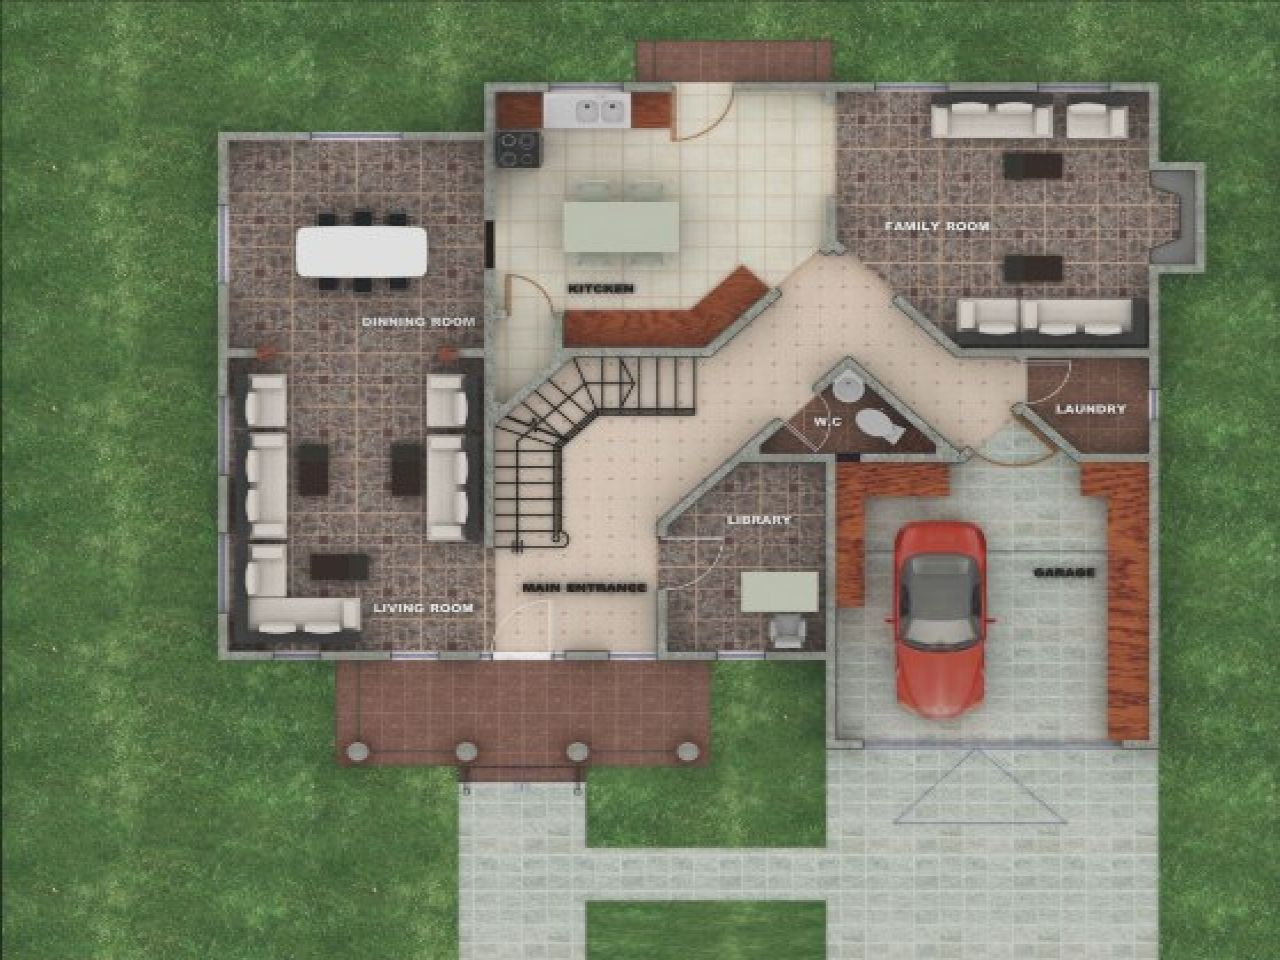 American Small House Design Modern Small House Plans American Cool American Home Plans Design Square House Plans New House Plans American Style House